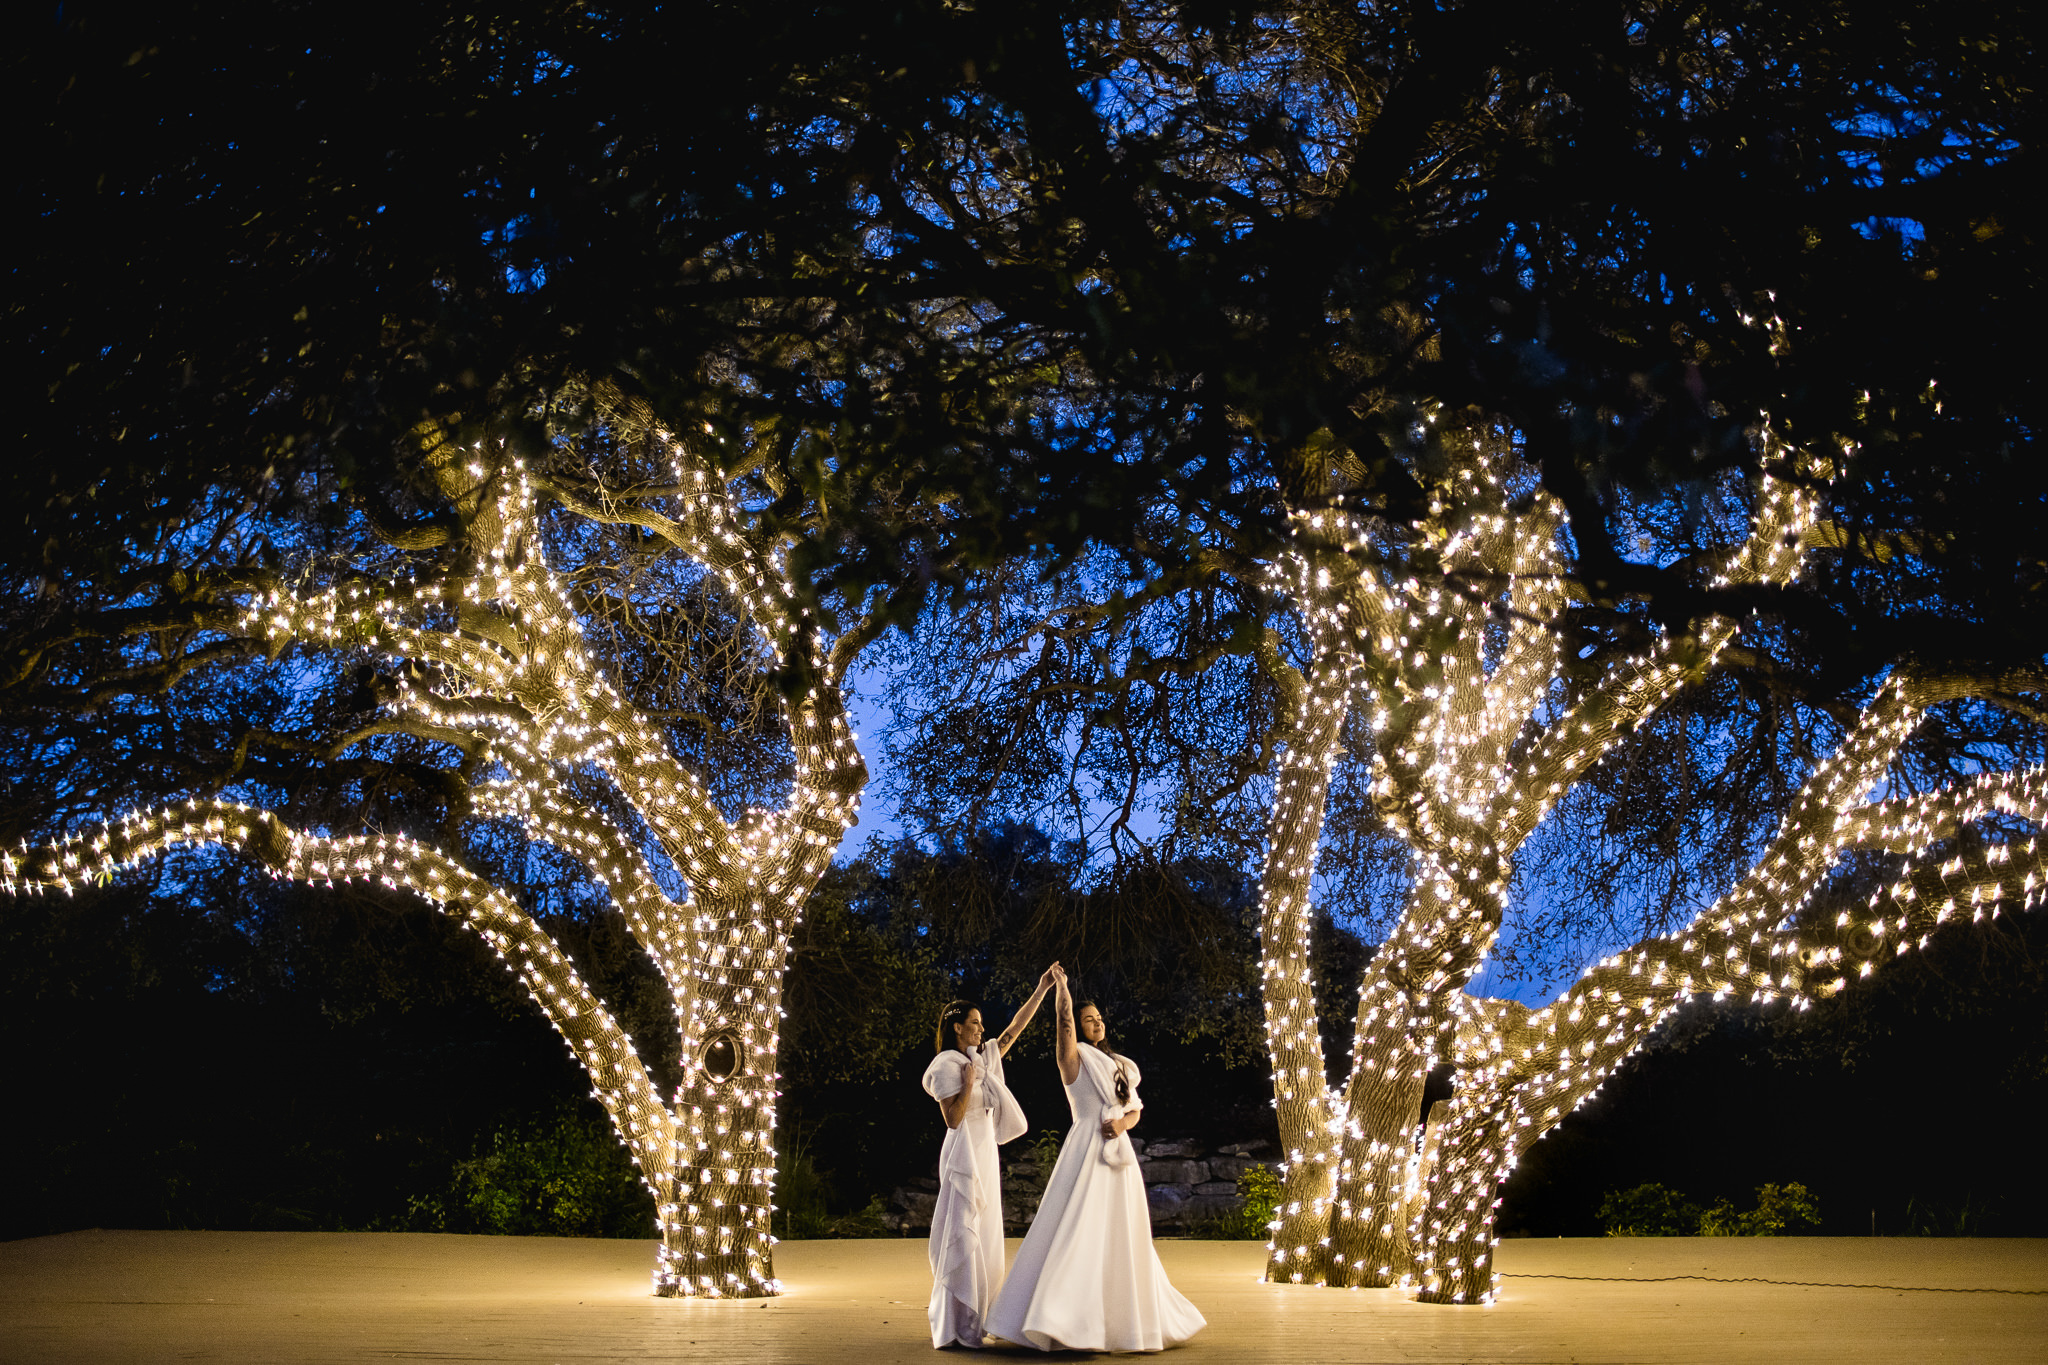 Brides against light wrapped trees in evening light - photo by John Winters Photography